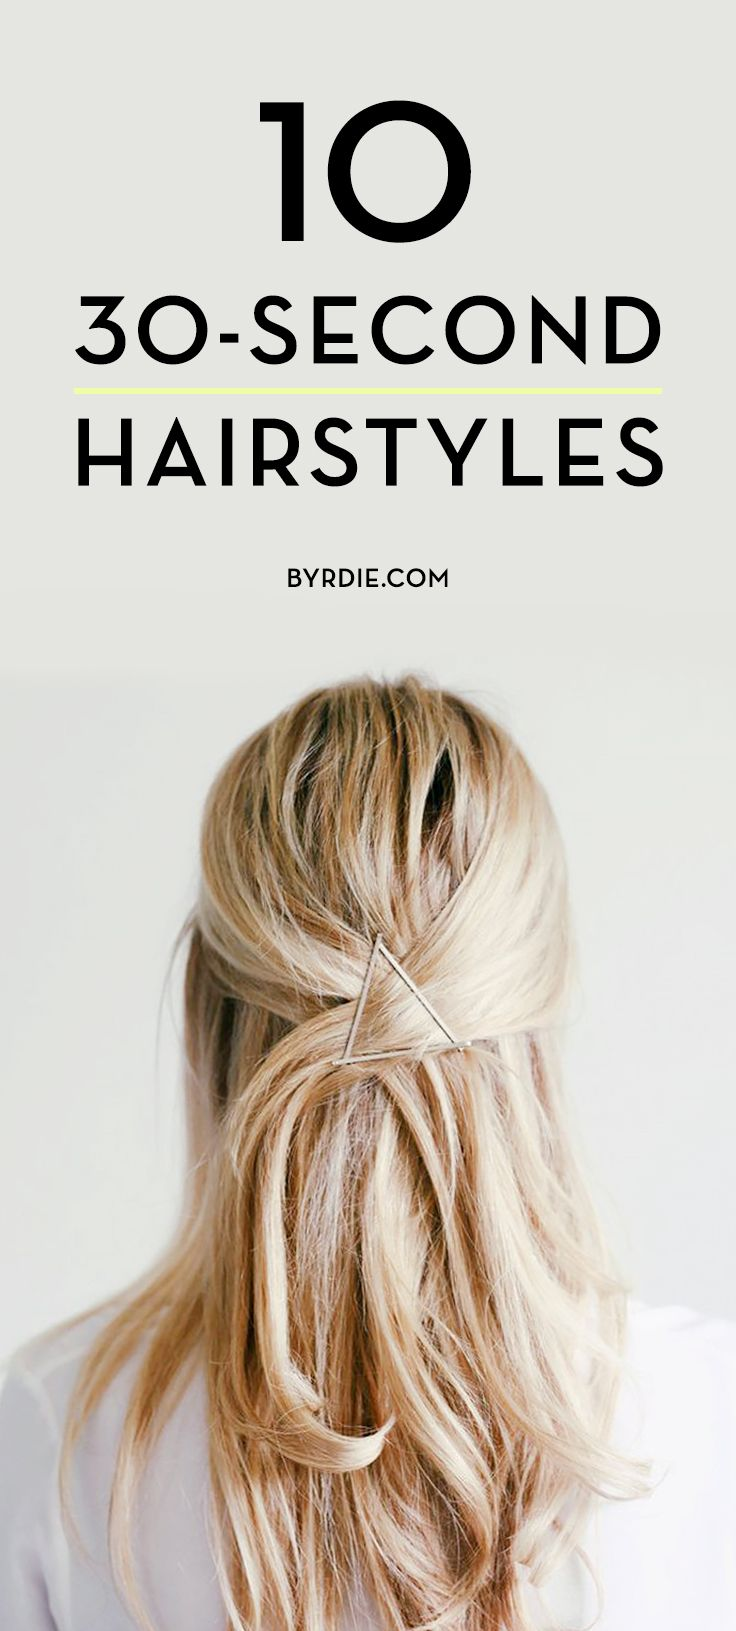 10 hairstyles you can pull together in seconds